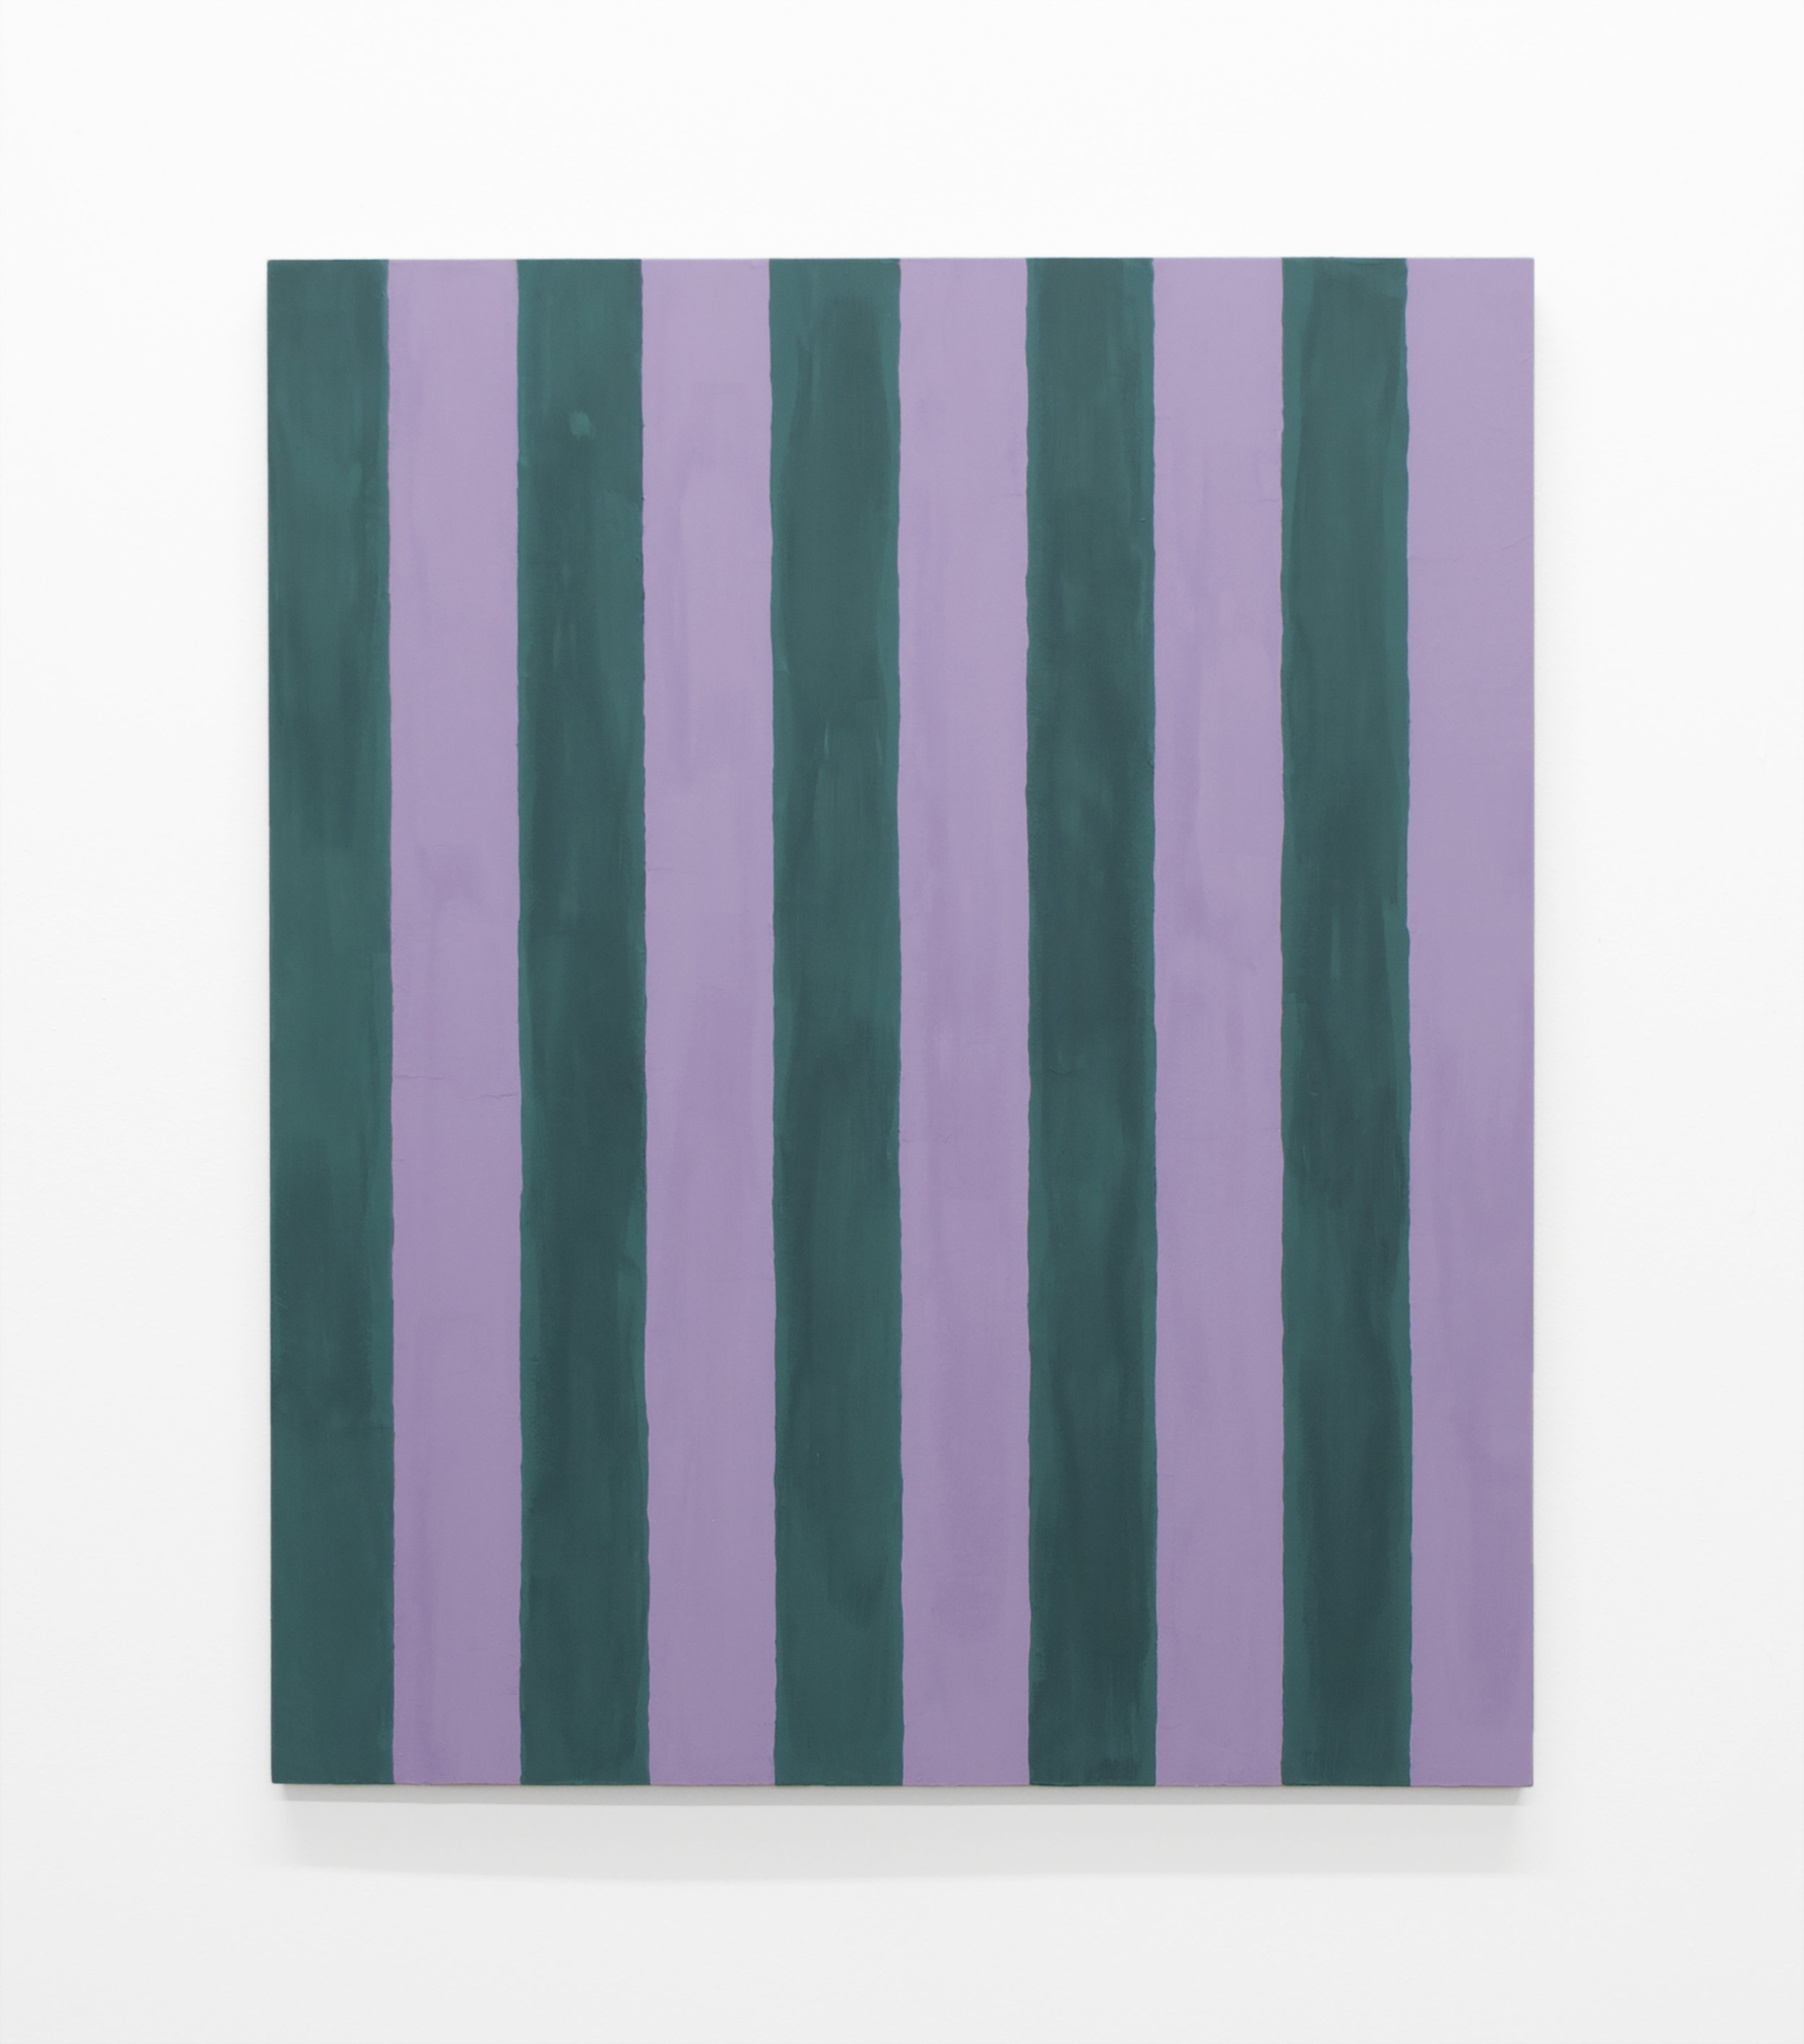 """Untitled (Two Inch Stripes), 1986 , 2016, casein on mahogany, 24"""" x 20"""""""